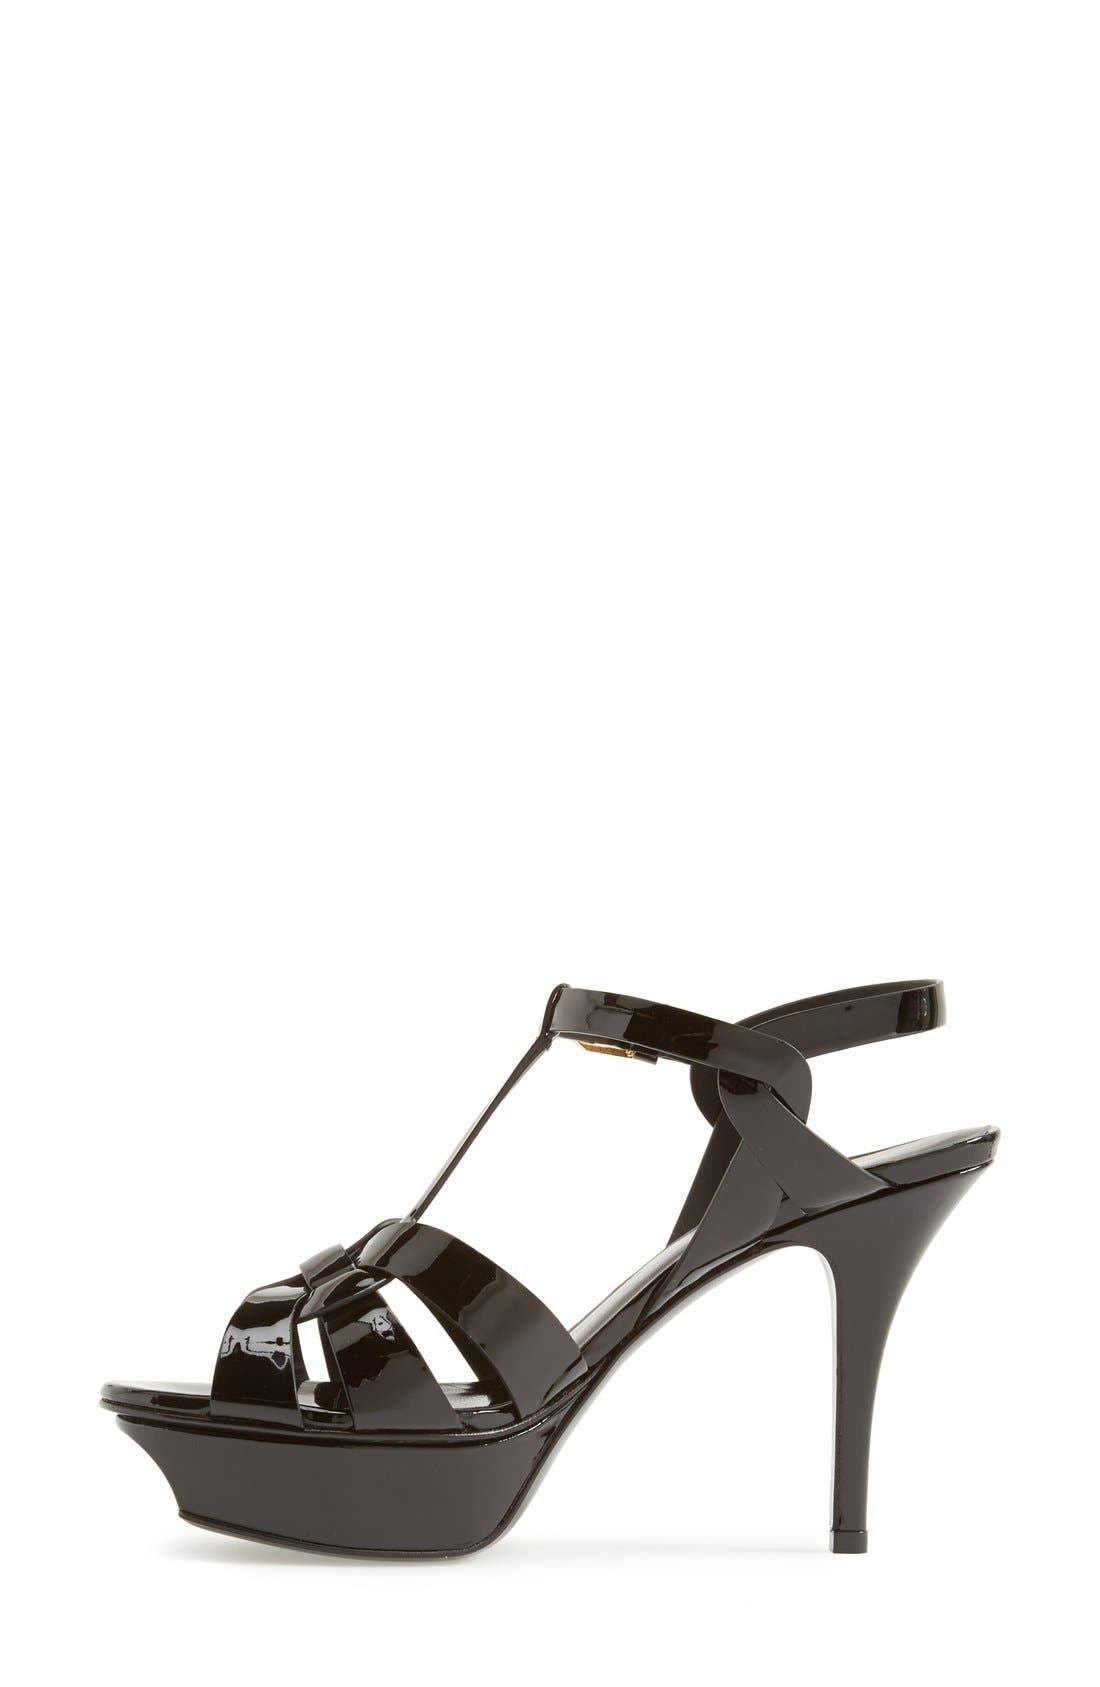 Alternate Image 3  - Saint Laurent 'Tribute' T-Strap Sandal (Women)